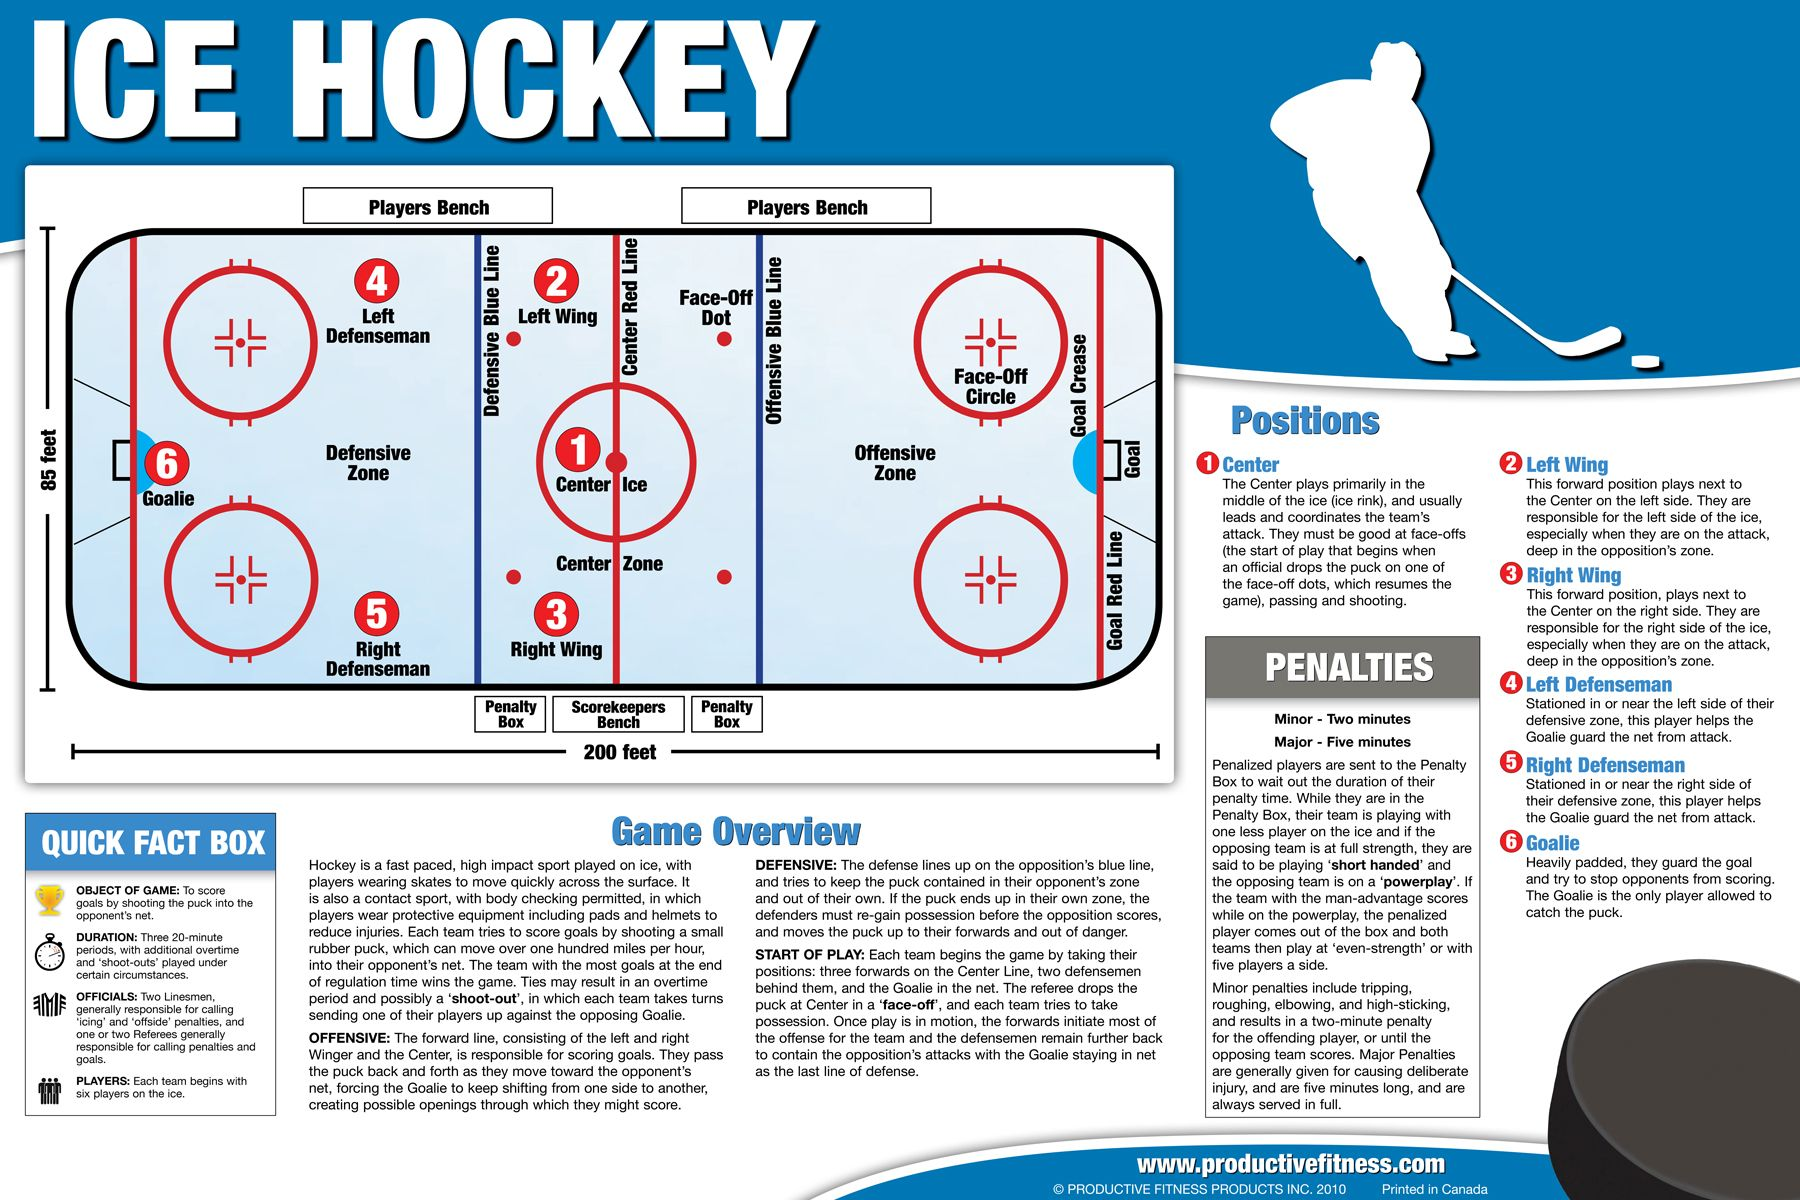 19.95 Our ice hockey overview poster is perfect to gain